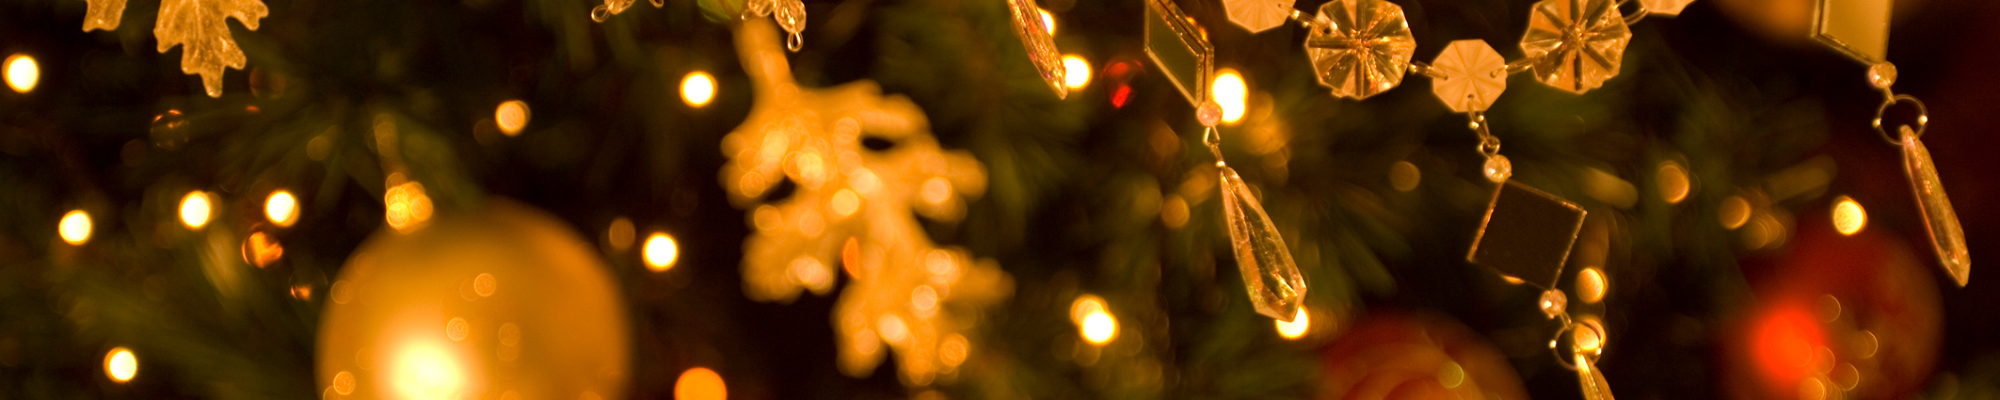 Gold and red ornaments on tree